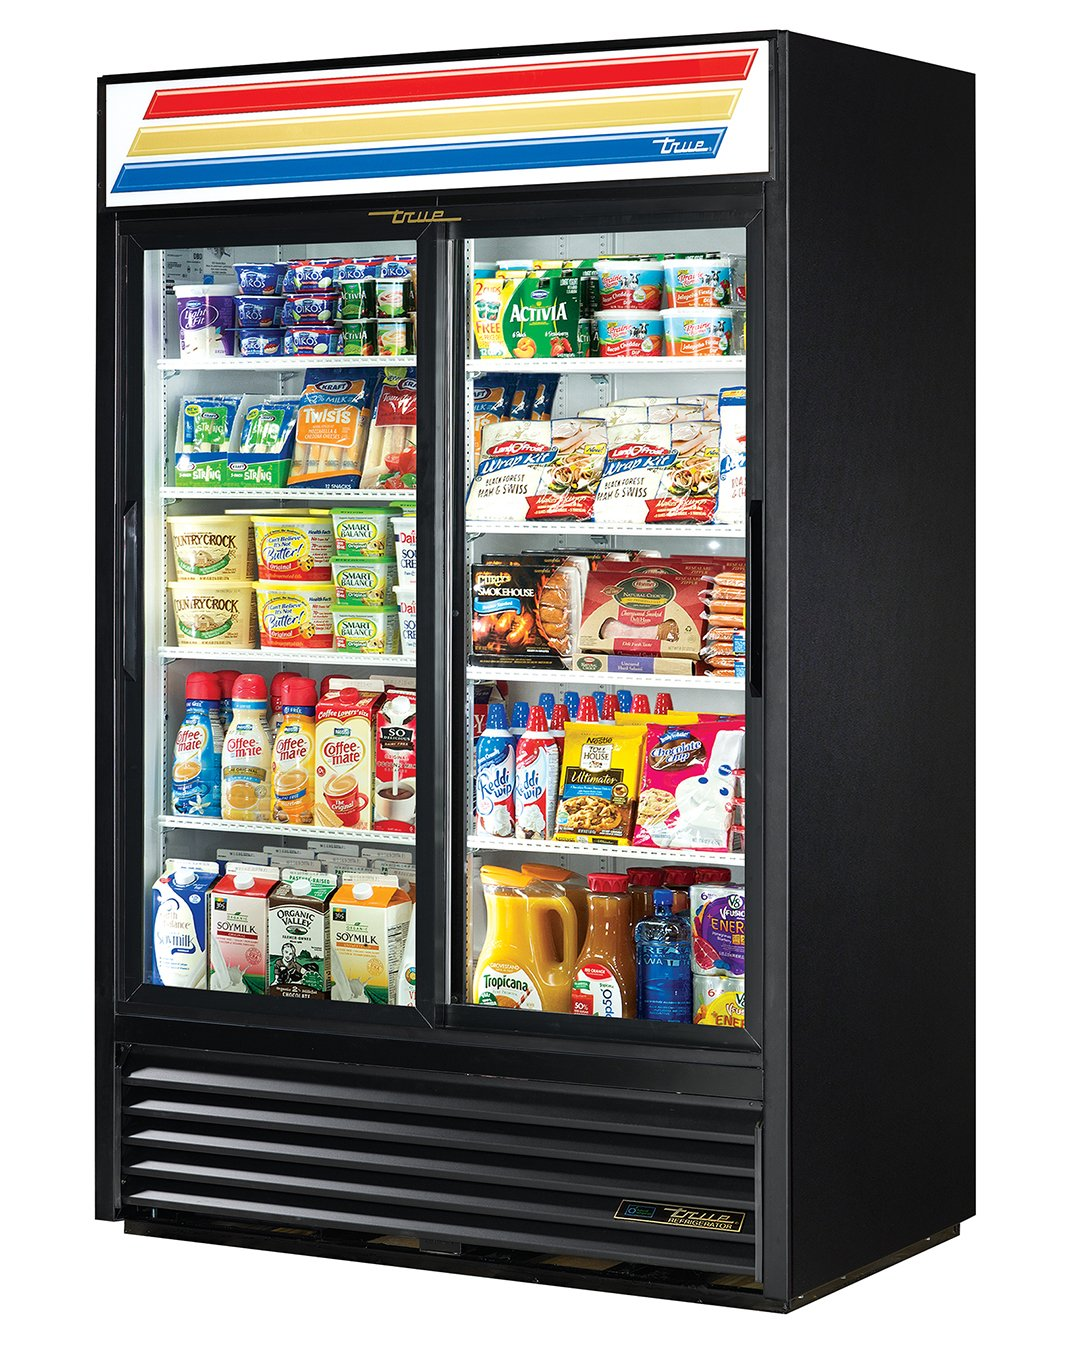 "True GDM-45-HC-LD Sliding Glass Door Merchandiser Refrigerator with Hydrocarbon Refrigerant and LED Lighting, Holds 33 Degree F to 38 Degree F, 78.625"" Height, 29.875"" Width, 51.125"" Length"